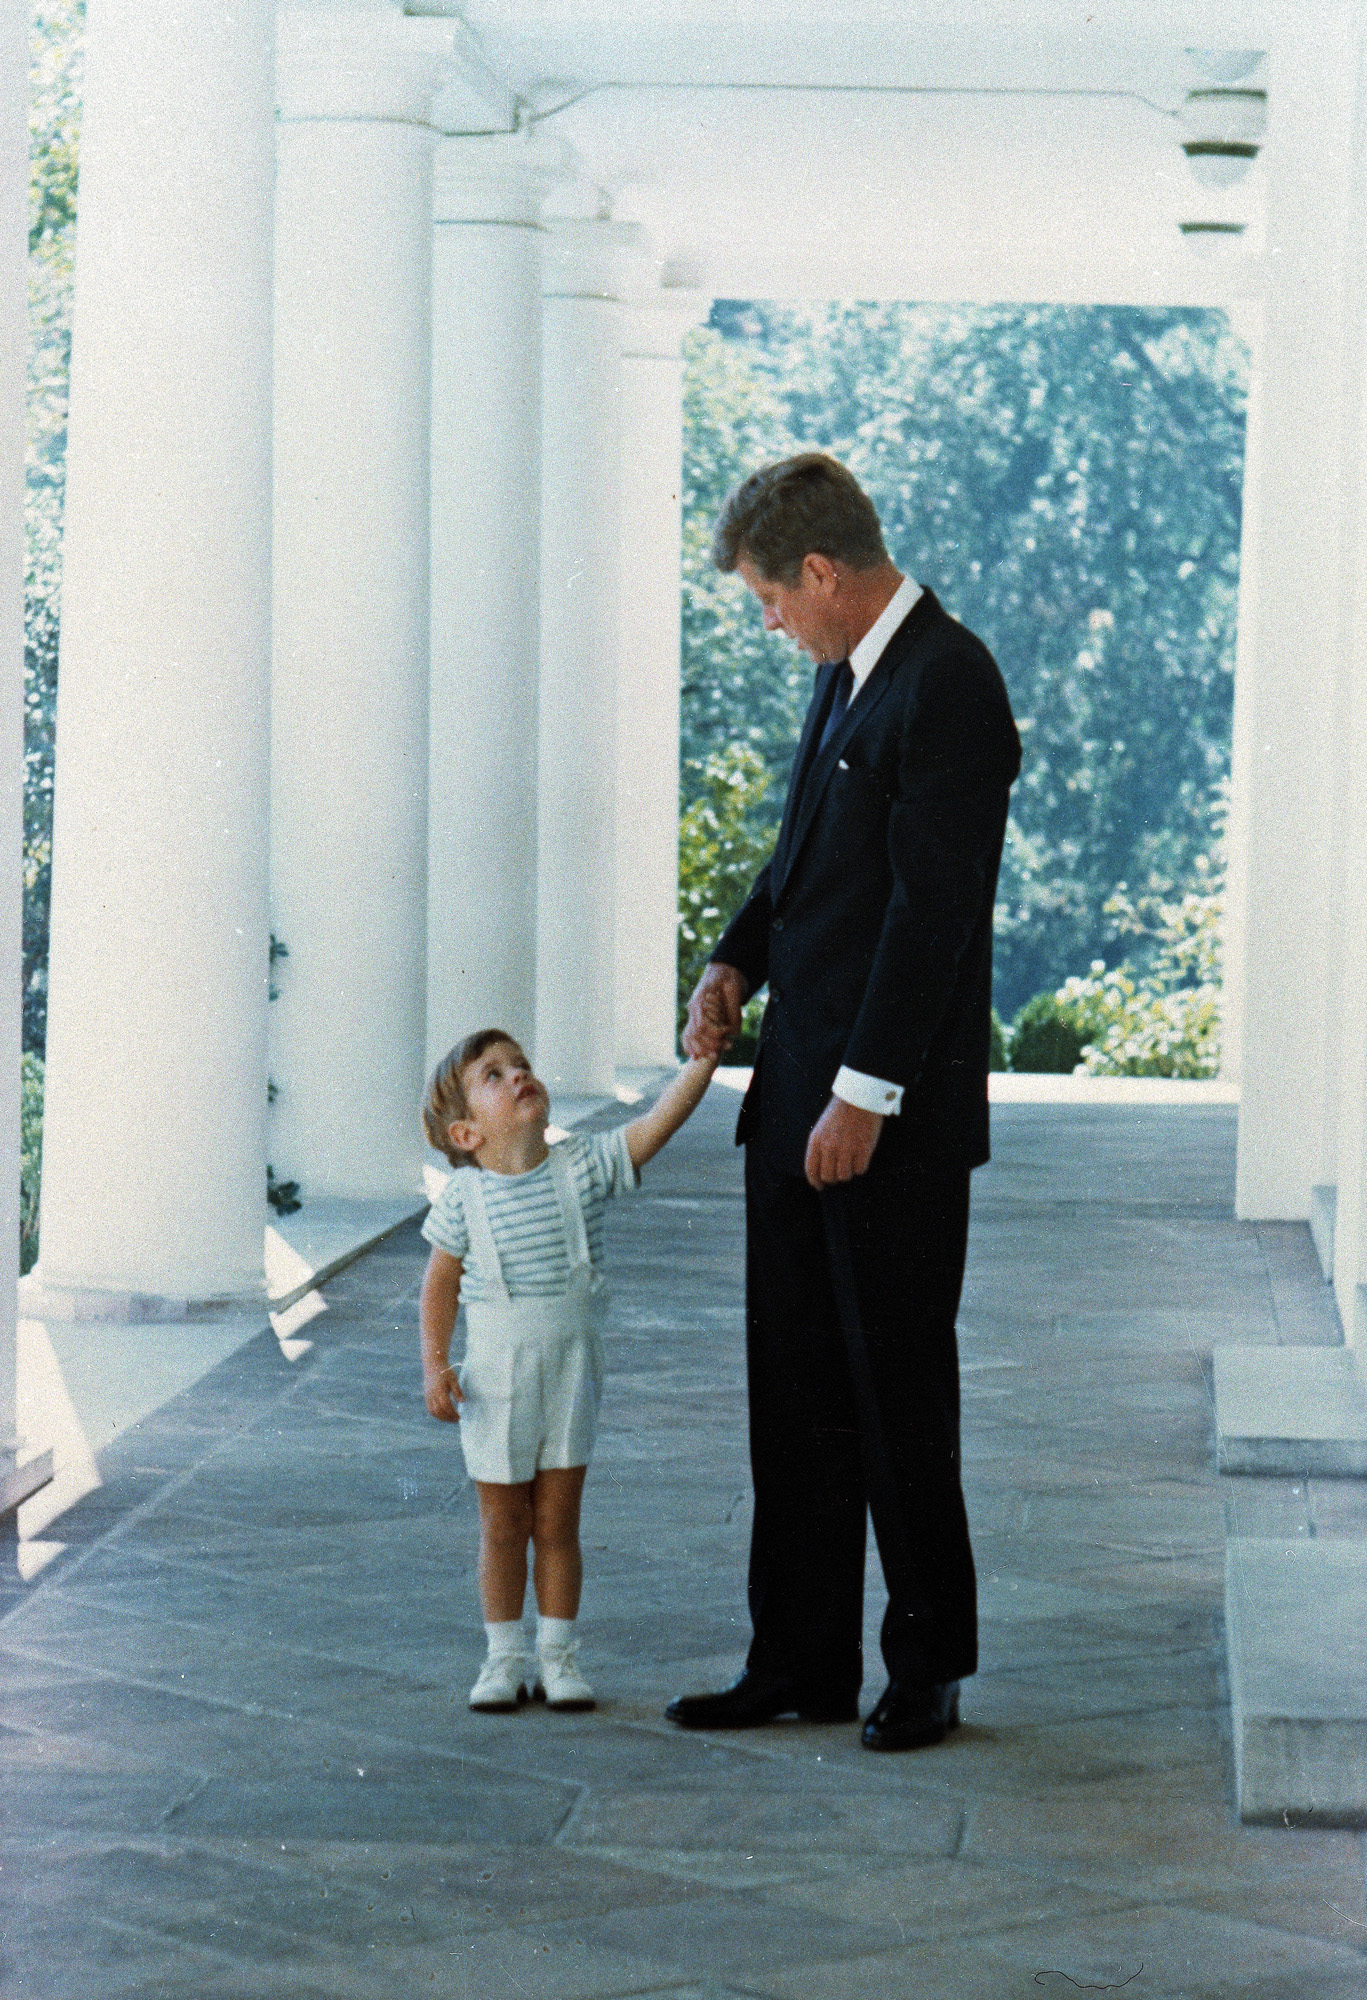 <div class='meta'><div class='origin-logo' data-origin='none'></div><span class='caption-text' data-credit='AP'>U.S. President John F. Kennedy is shown with his son, John Jr., as they hold hands outside the White House in Washington, D.C. circa 1963.</span></div>